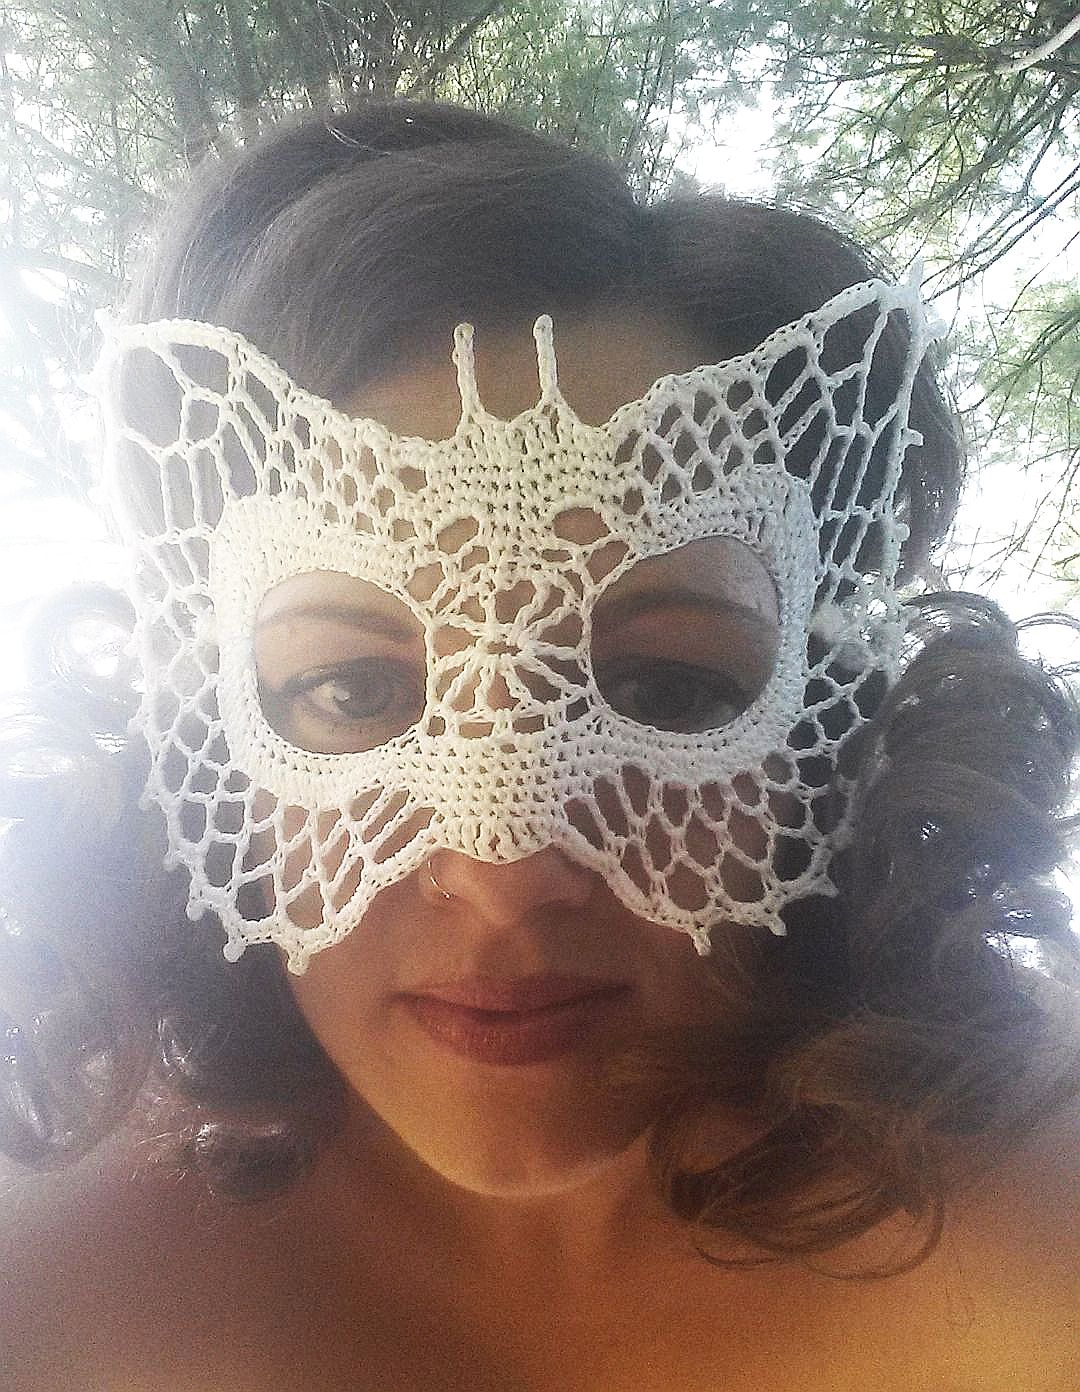 Butterfly Lace Masquerade Mask (dress up or photo prop)- crochet pattern